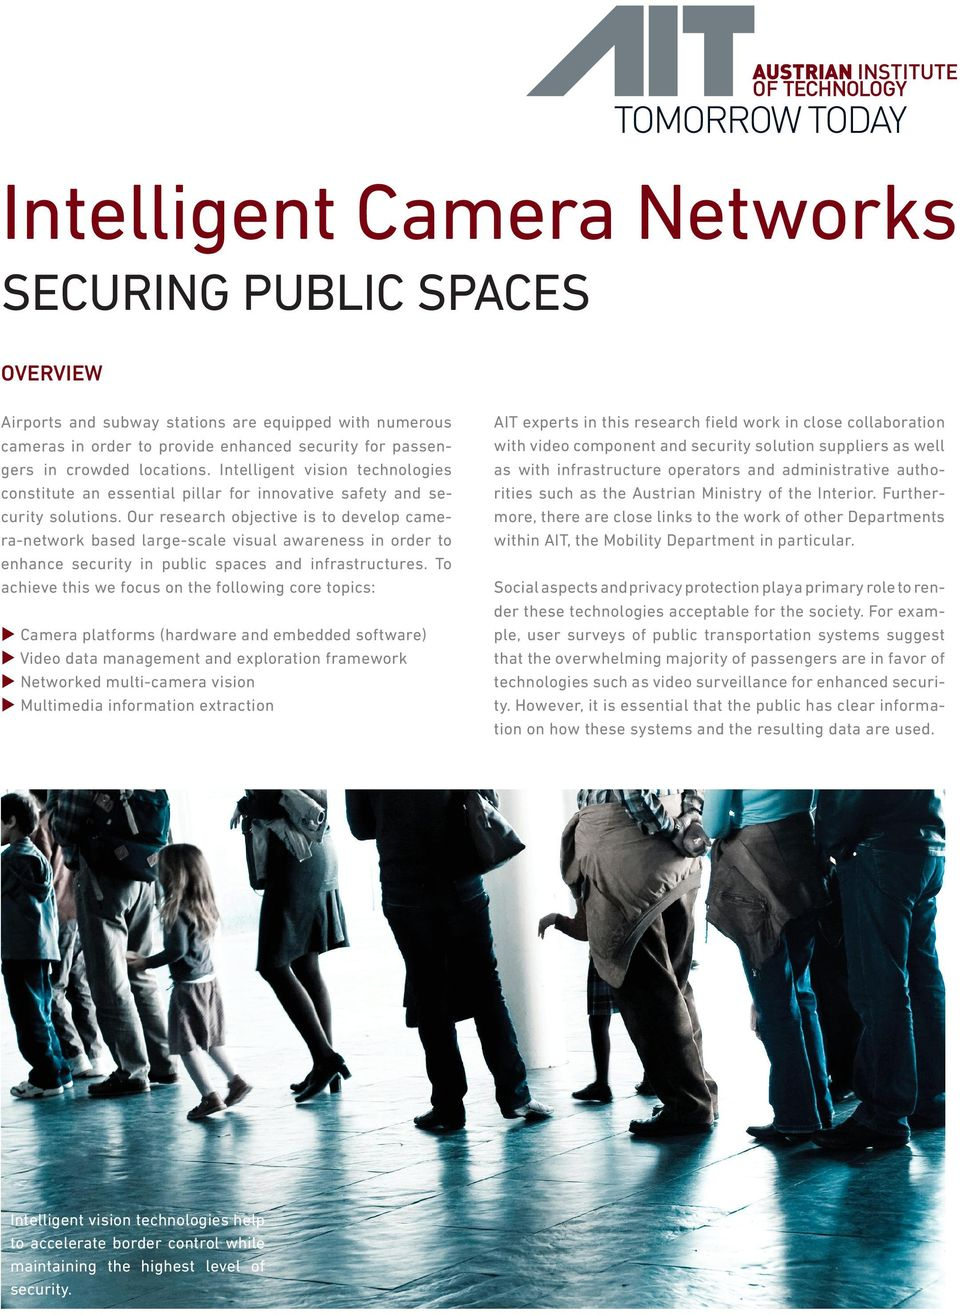 Our research objective is to develop camera-network based large-scale visual awareness in order to enhance security in public spaces and infrastructures.